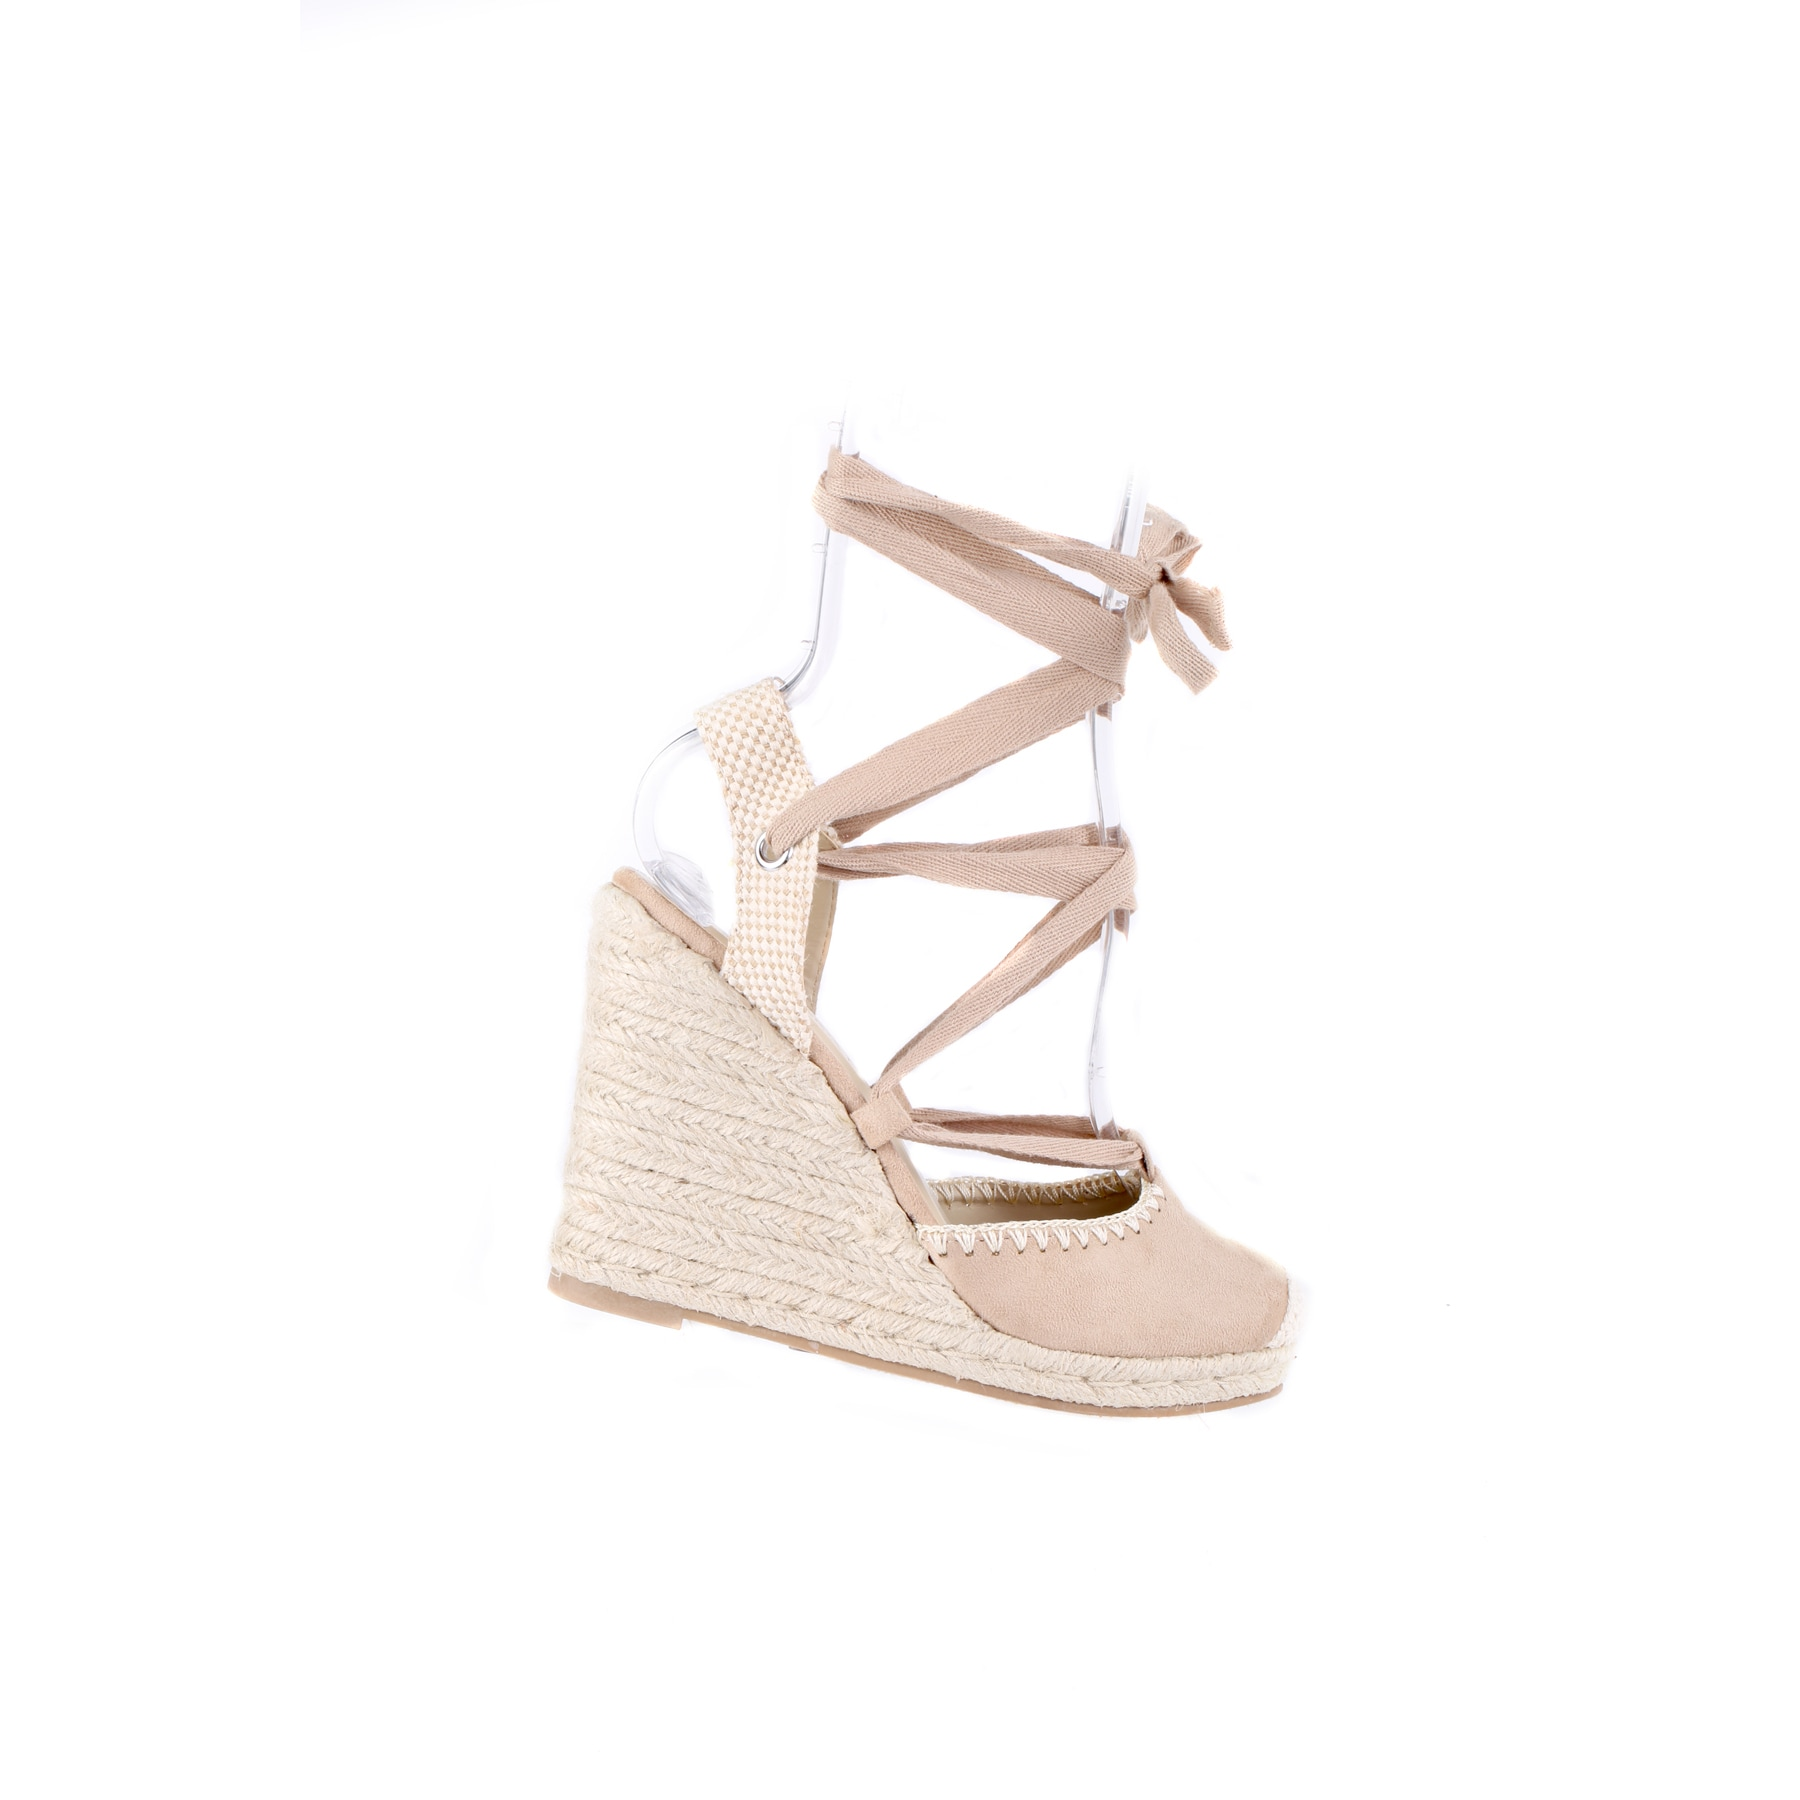 c9d56d796 Shop Xehar Women s Casual Strappy Heeled Wedge Sandal - Free Shipping On  Orders Over  45 - Overstock.com - 15060478